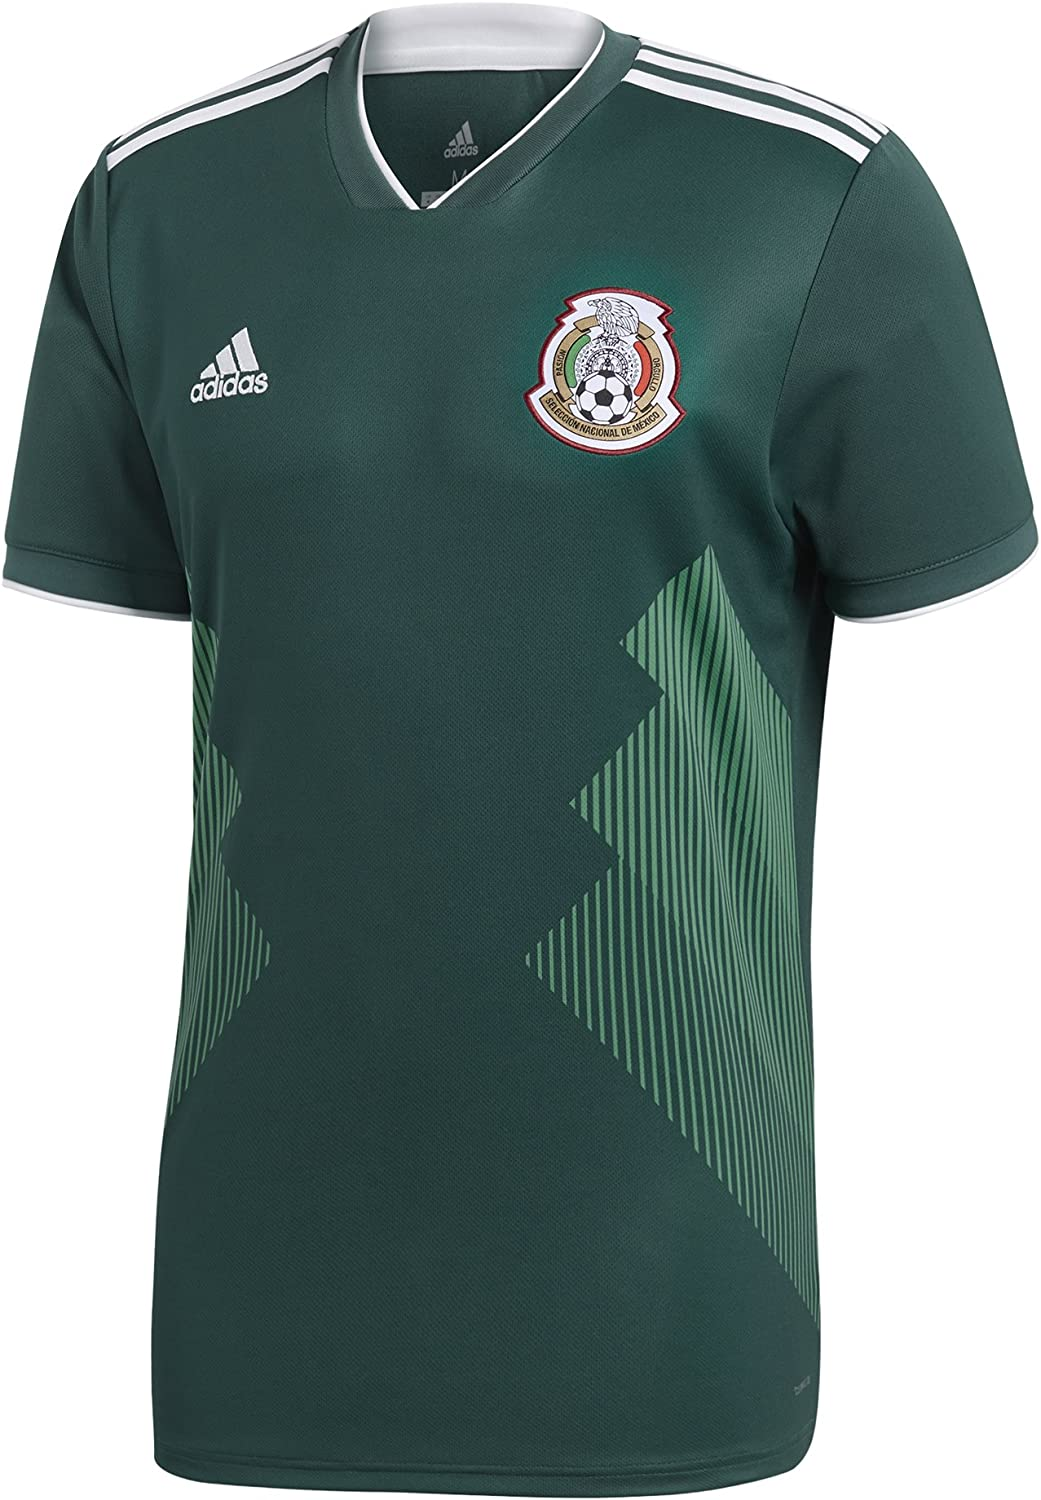 jersey mexico